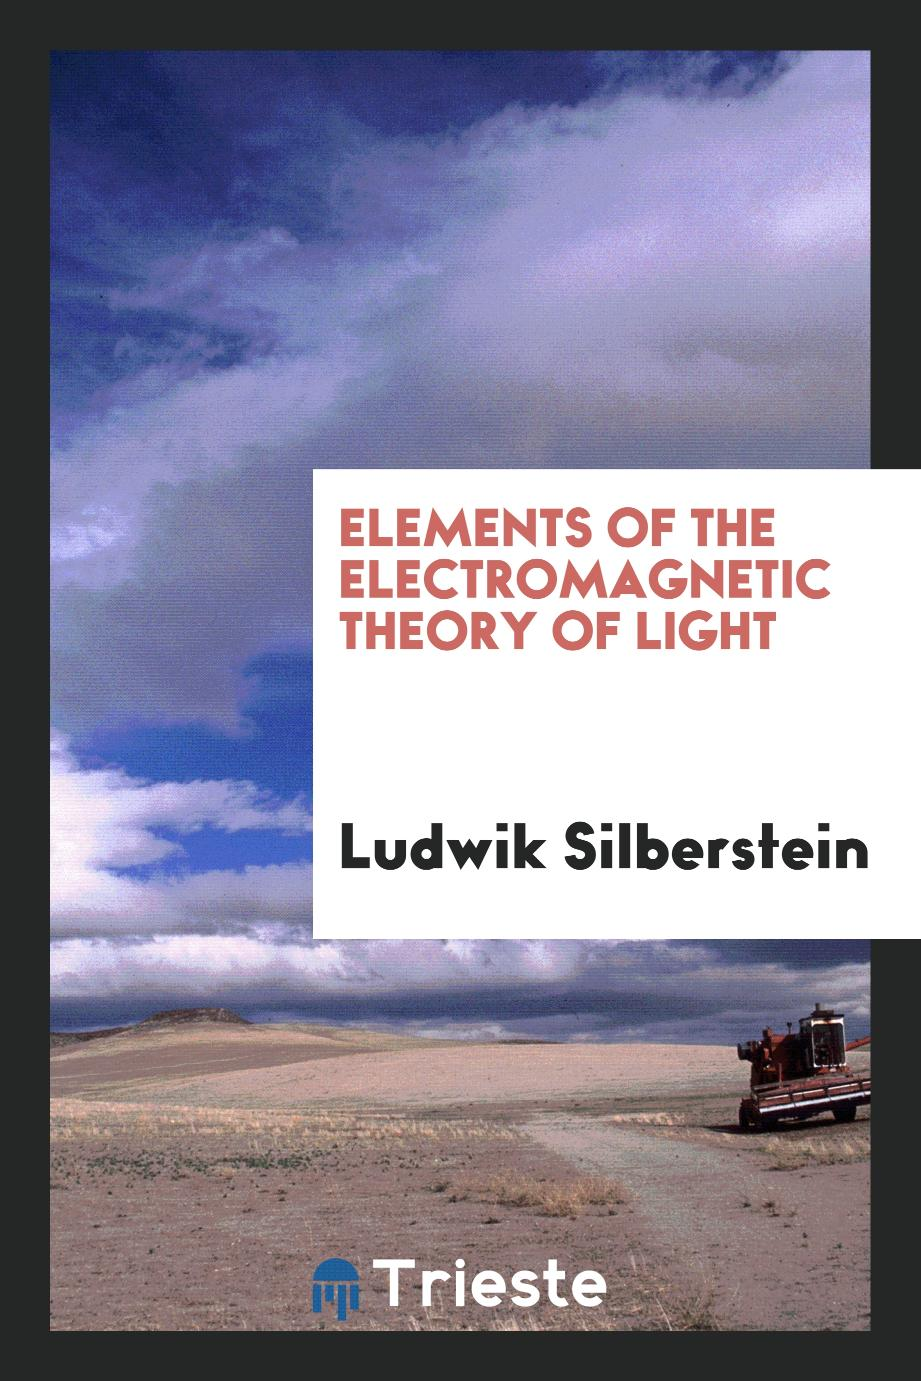 Elements of the electromagnetic theory of light